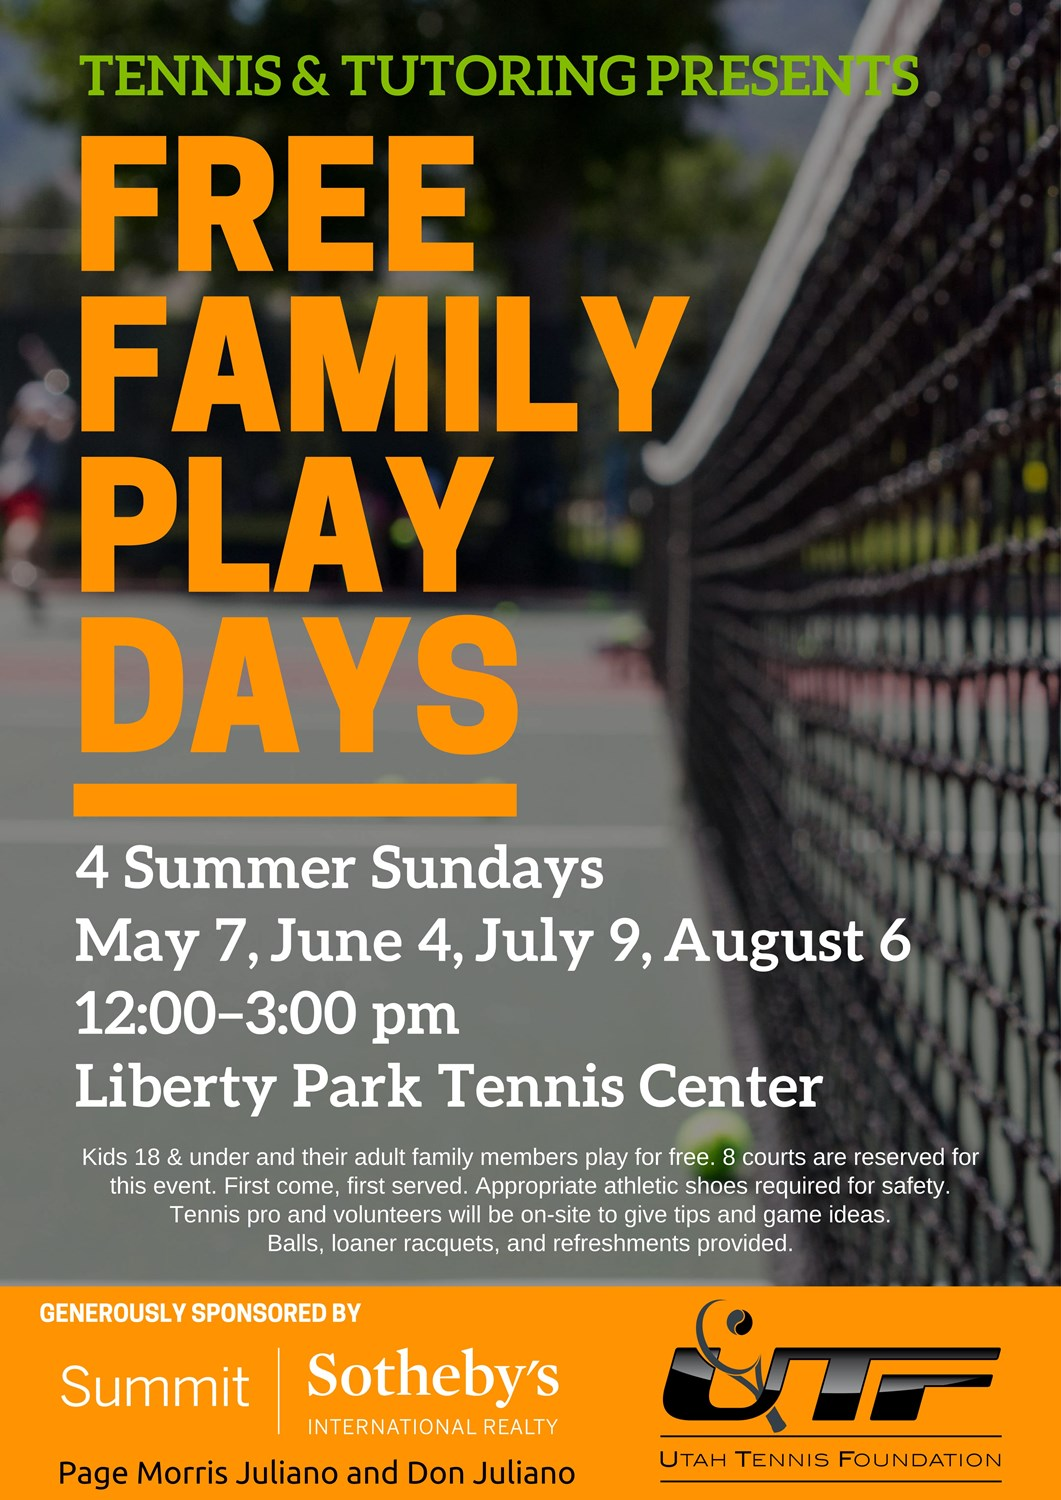 Free_Family_Play_Days_Poster-Final-1